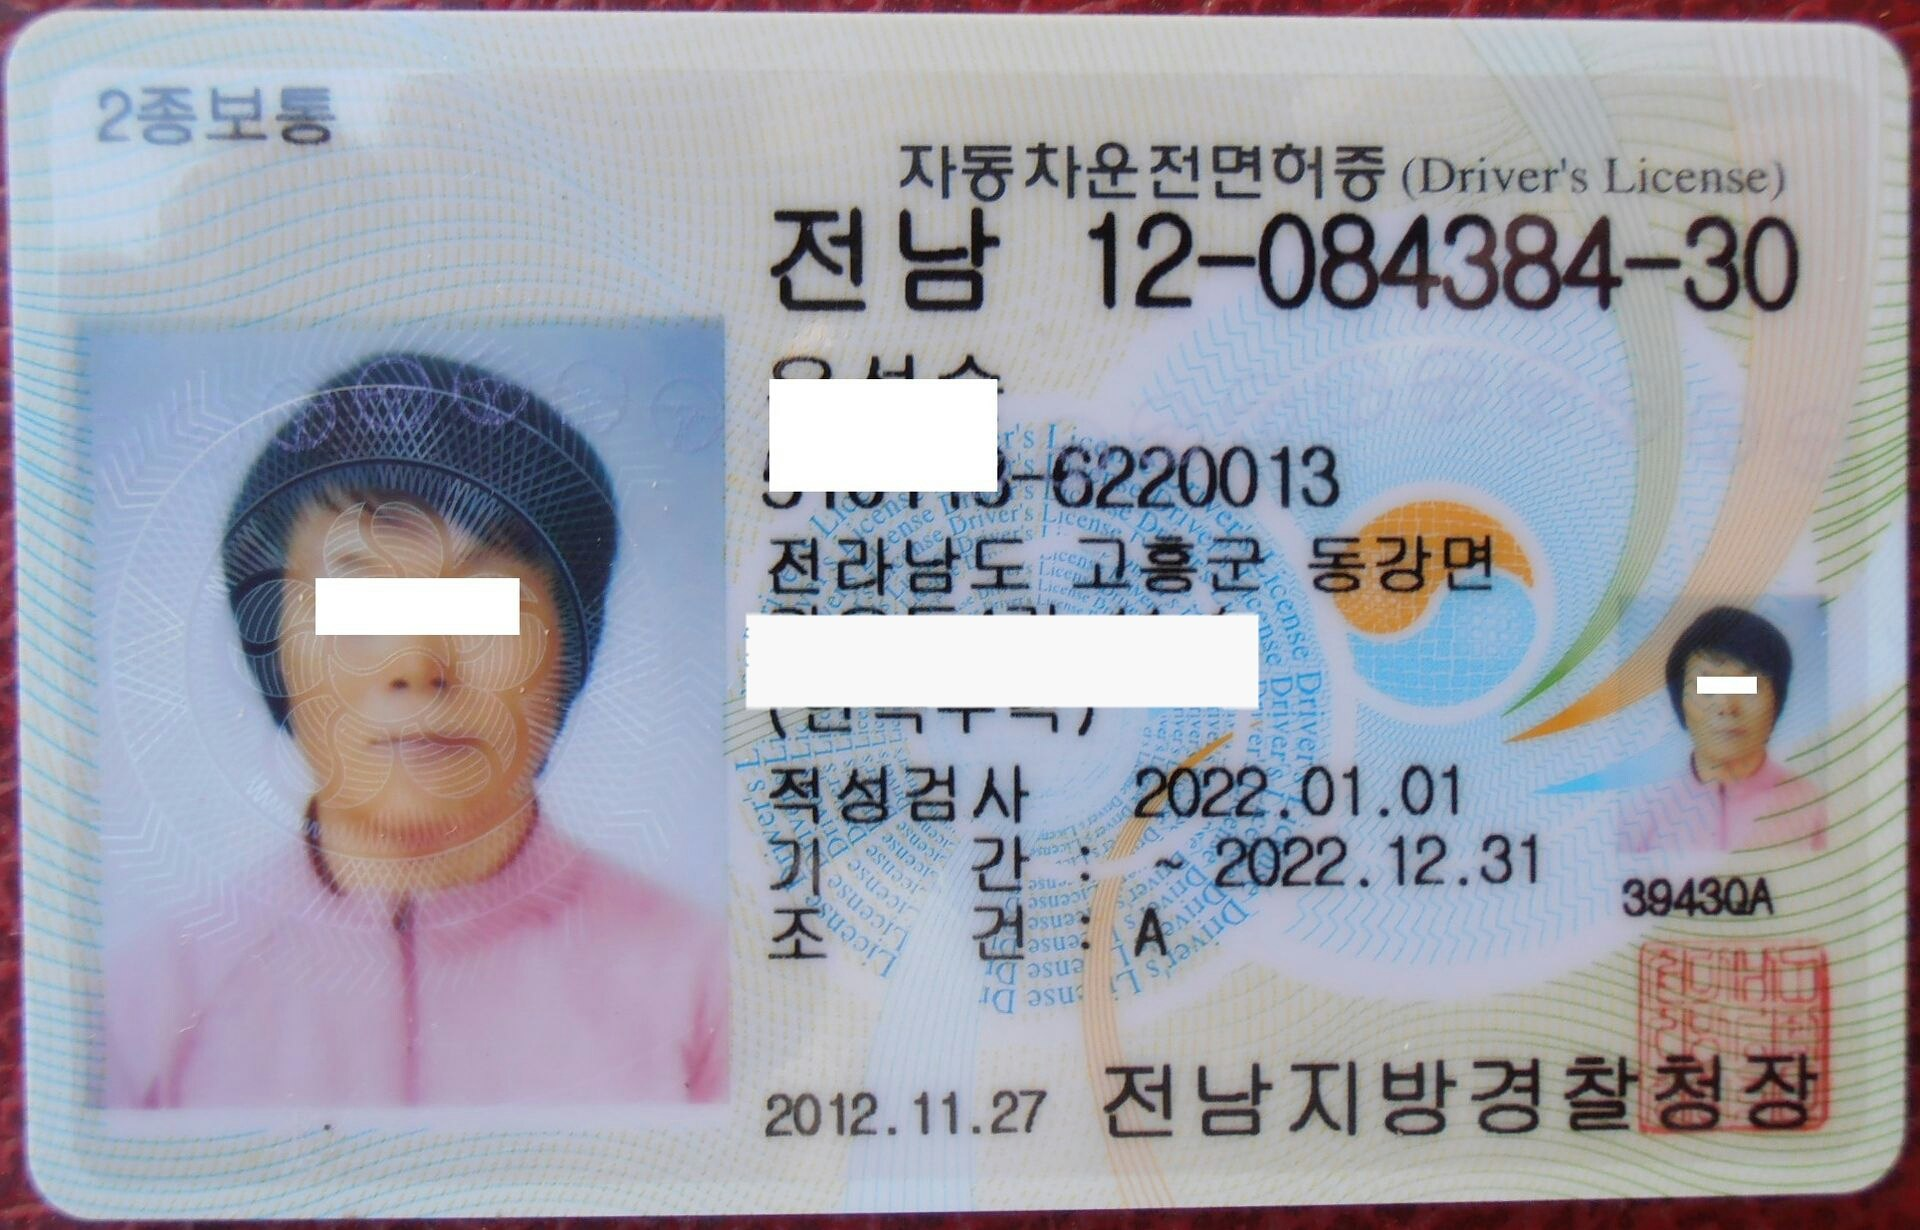 Driving license in south korea wikipedia for Wisconsin drivers license template